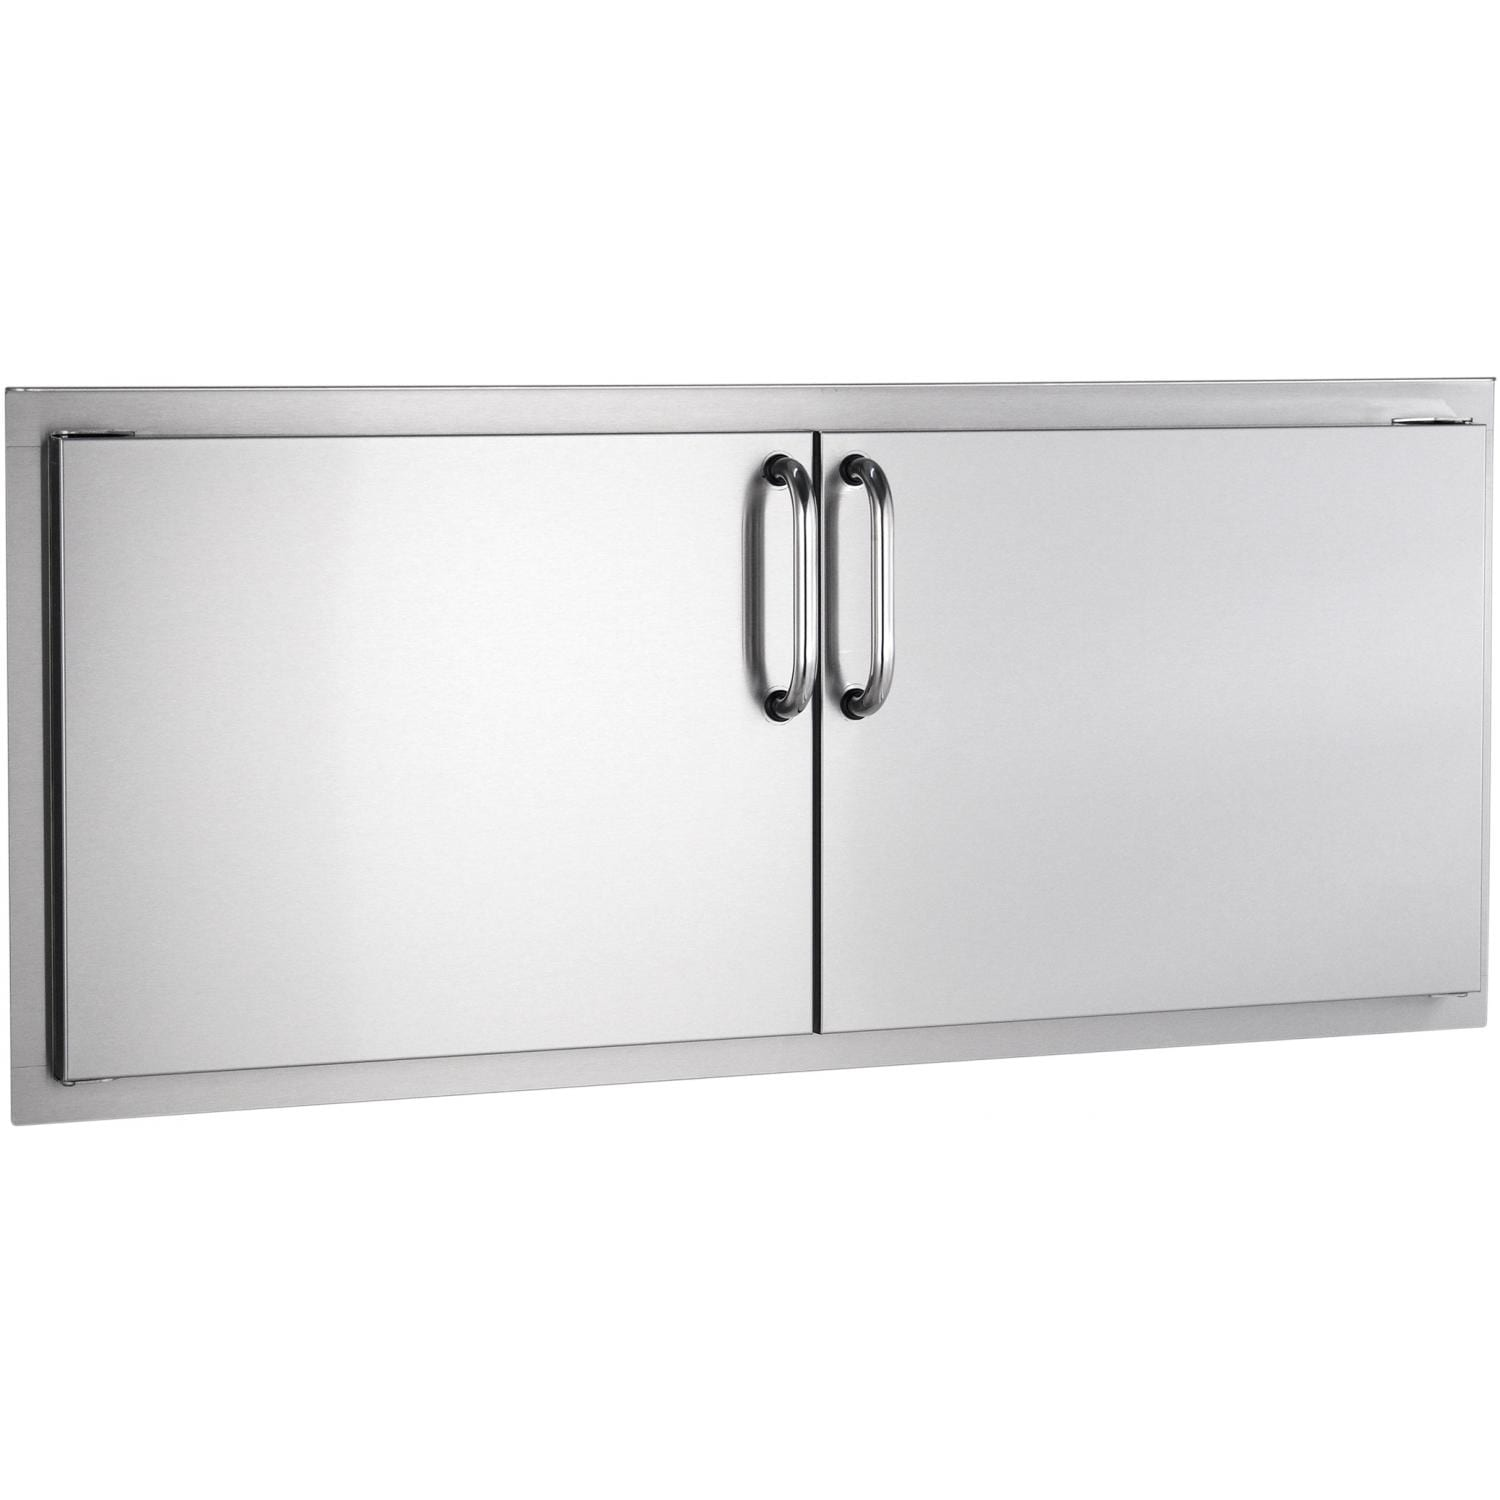 AOG 39-Inch Double Access Door